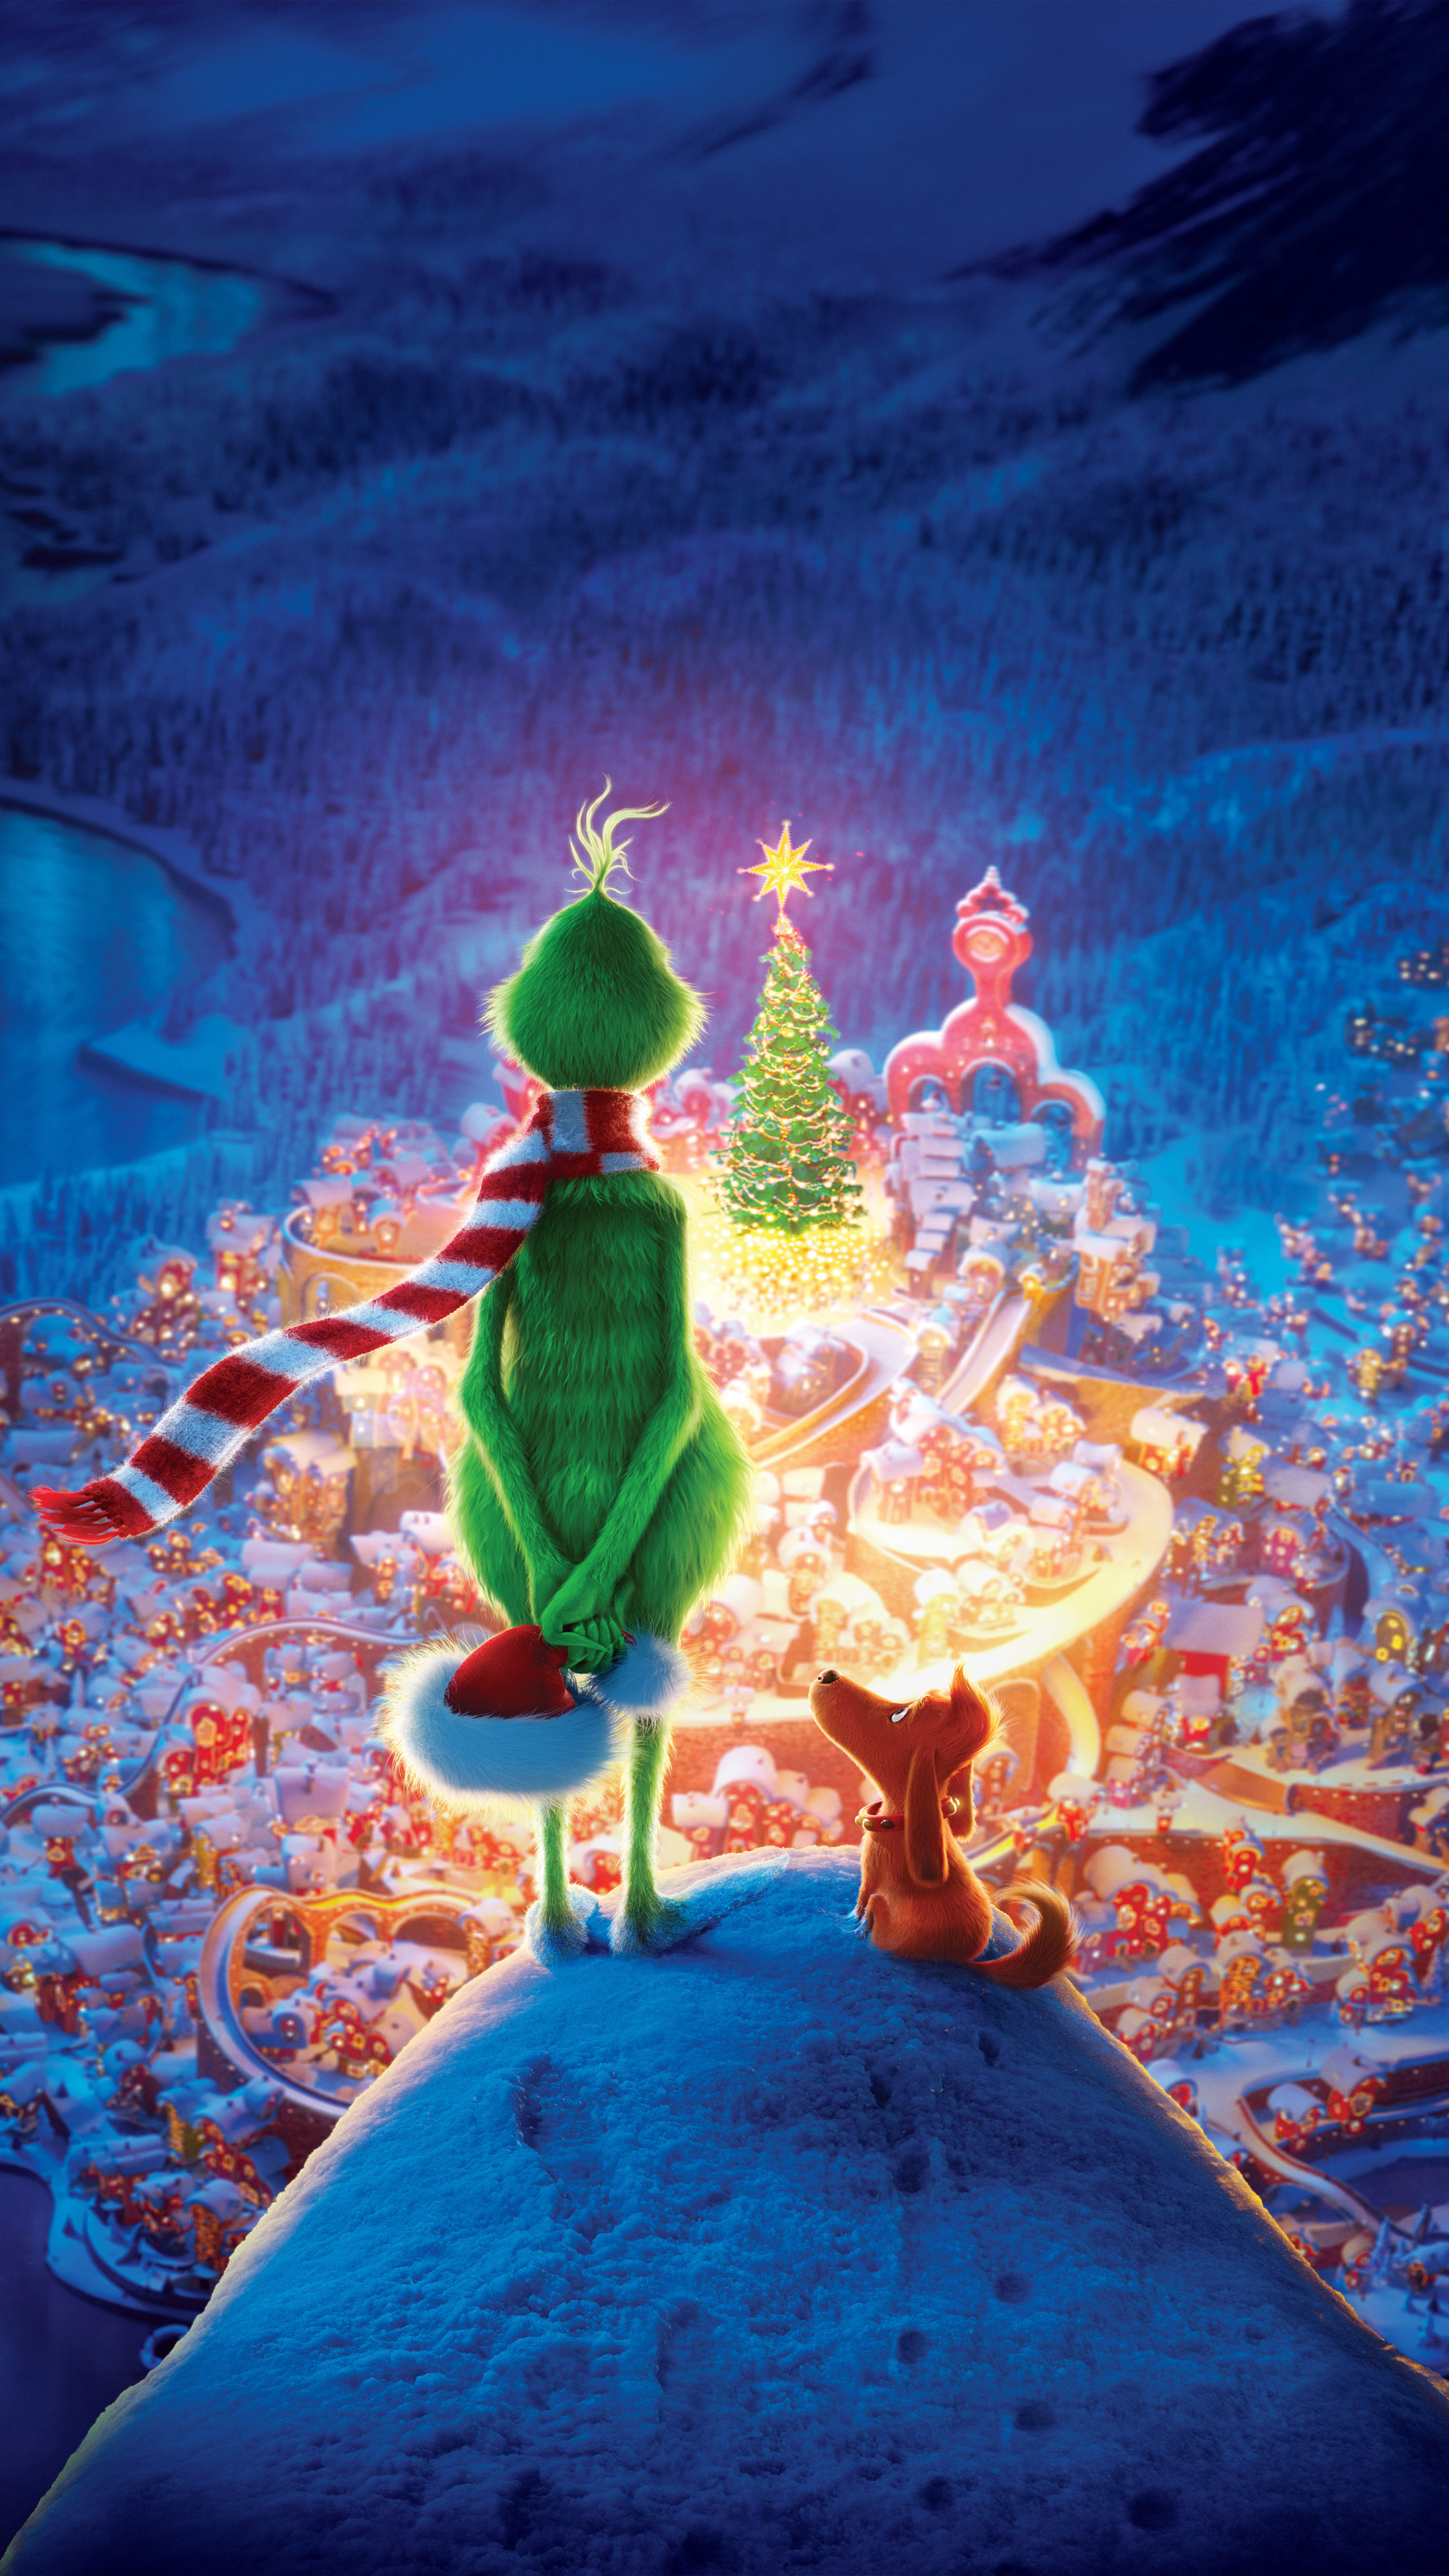 The Grinch Animation 2018 Free 4K Ultra HD Mobile Wallpaper